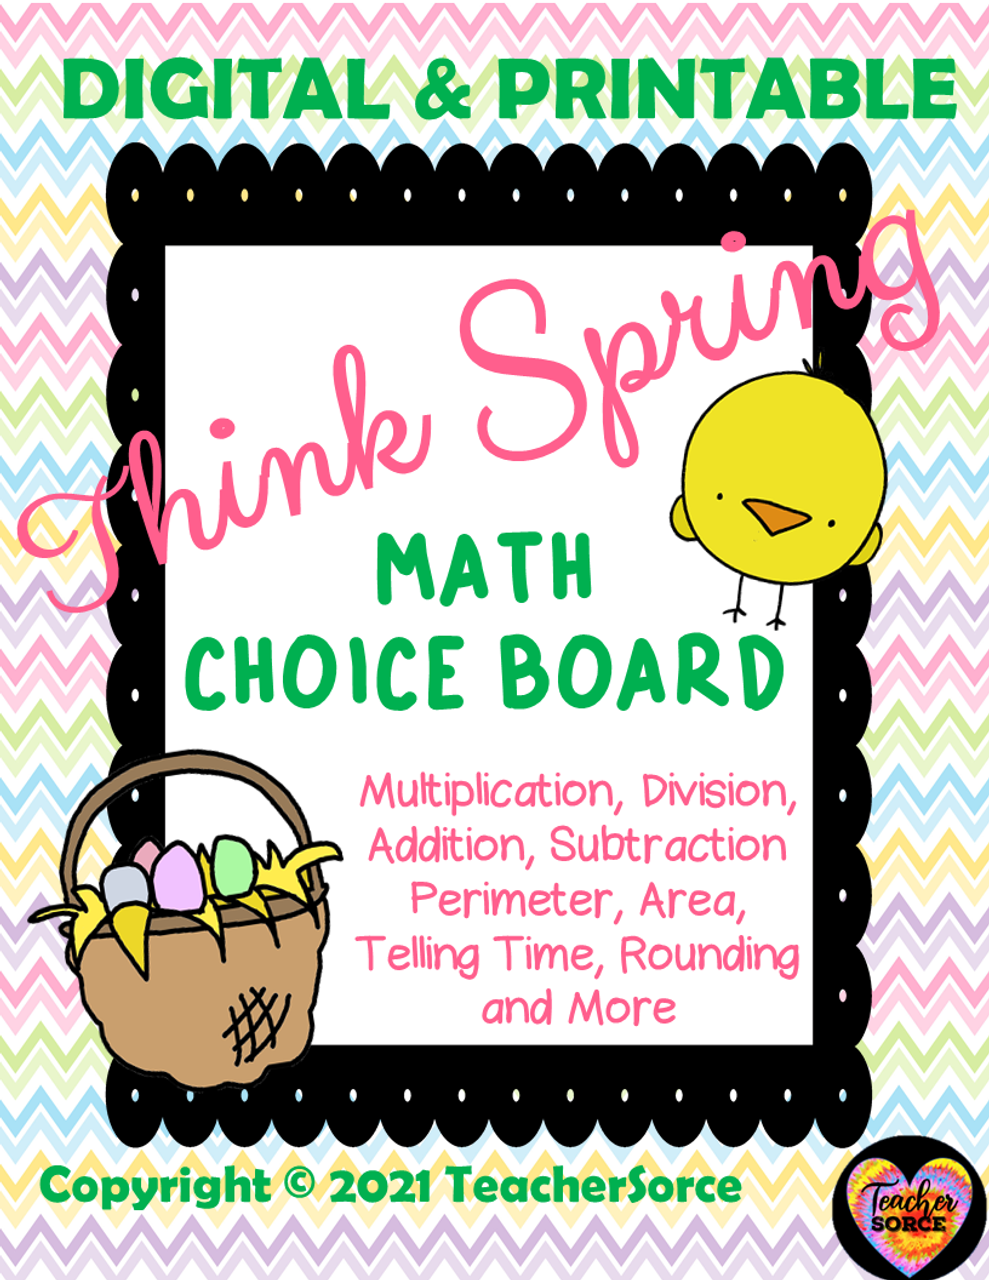 Think Spring Easter Math Land Choice Board